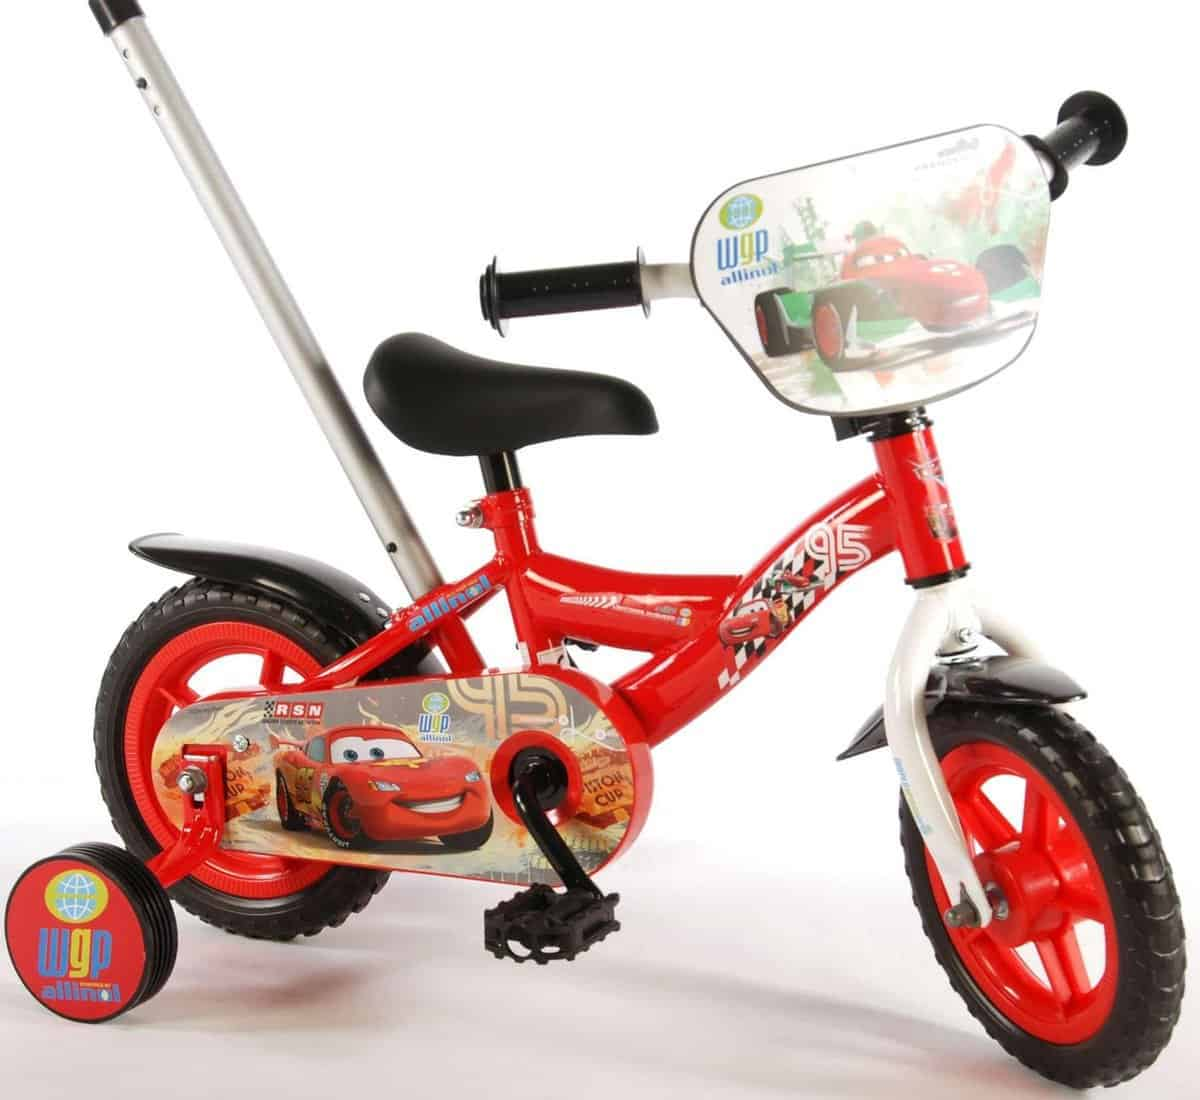 Best Kids Bicycle with Push Bar: Volare Disney Cars